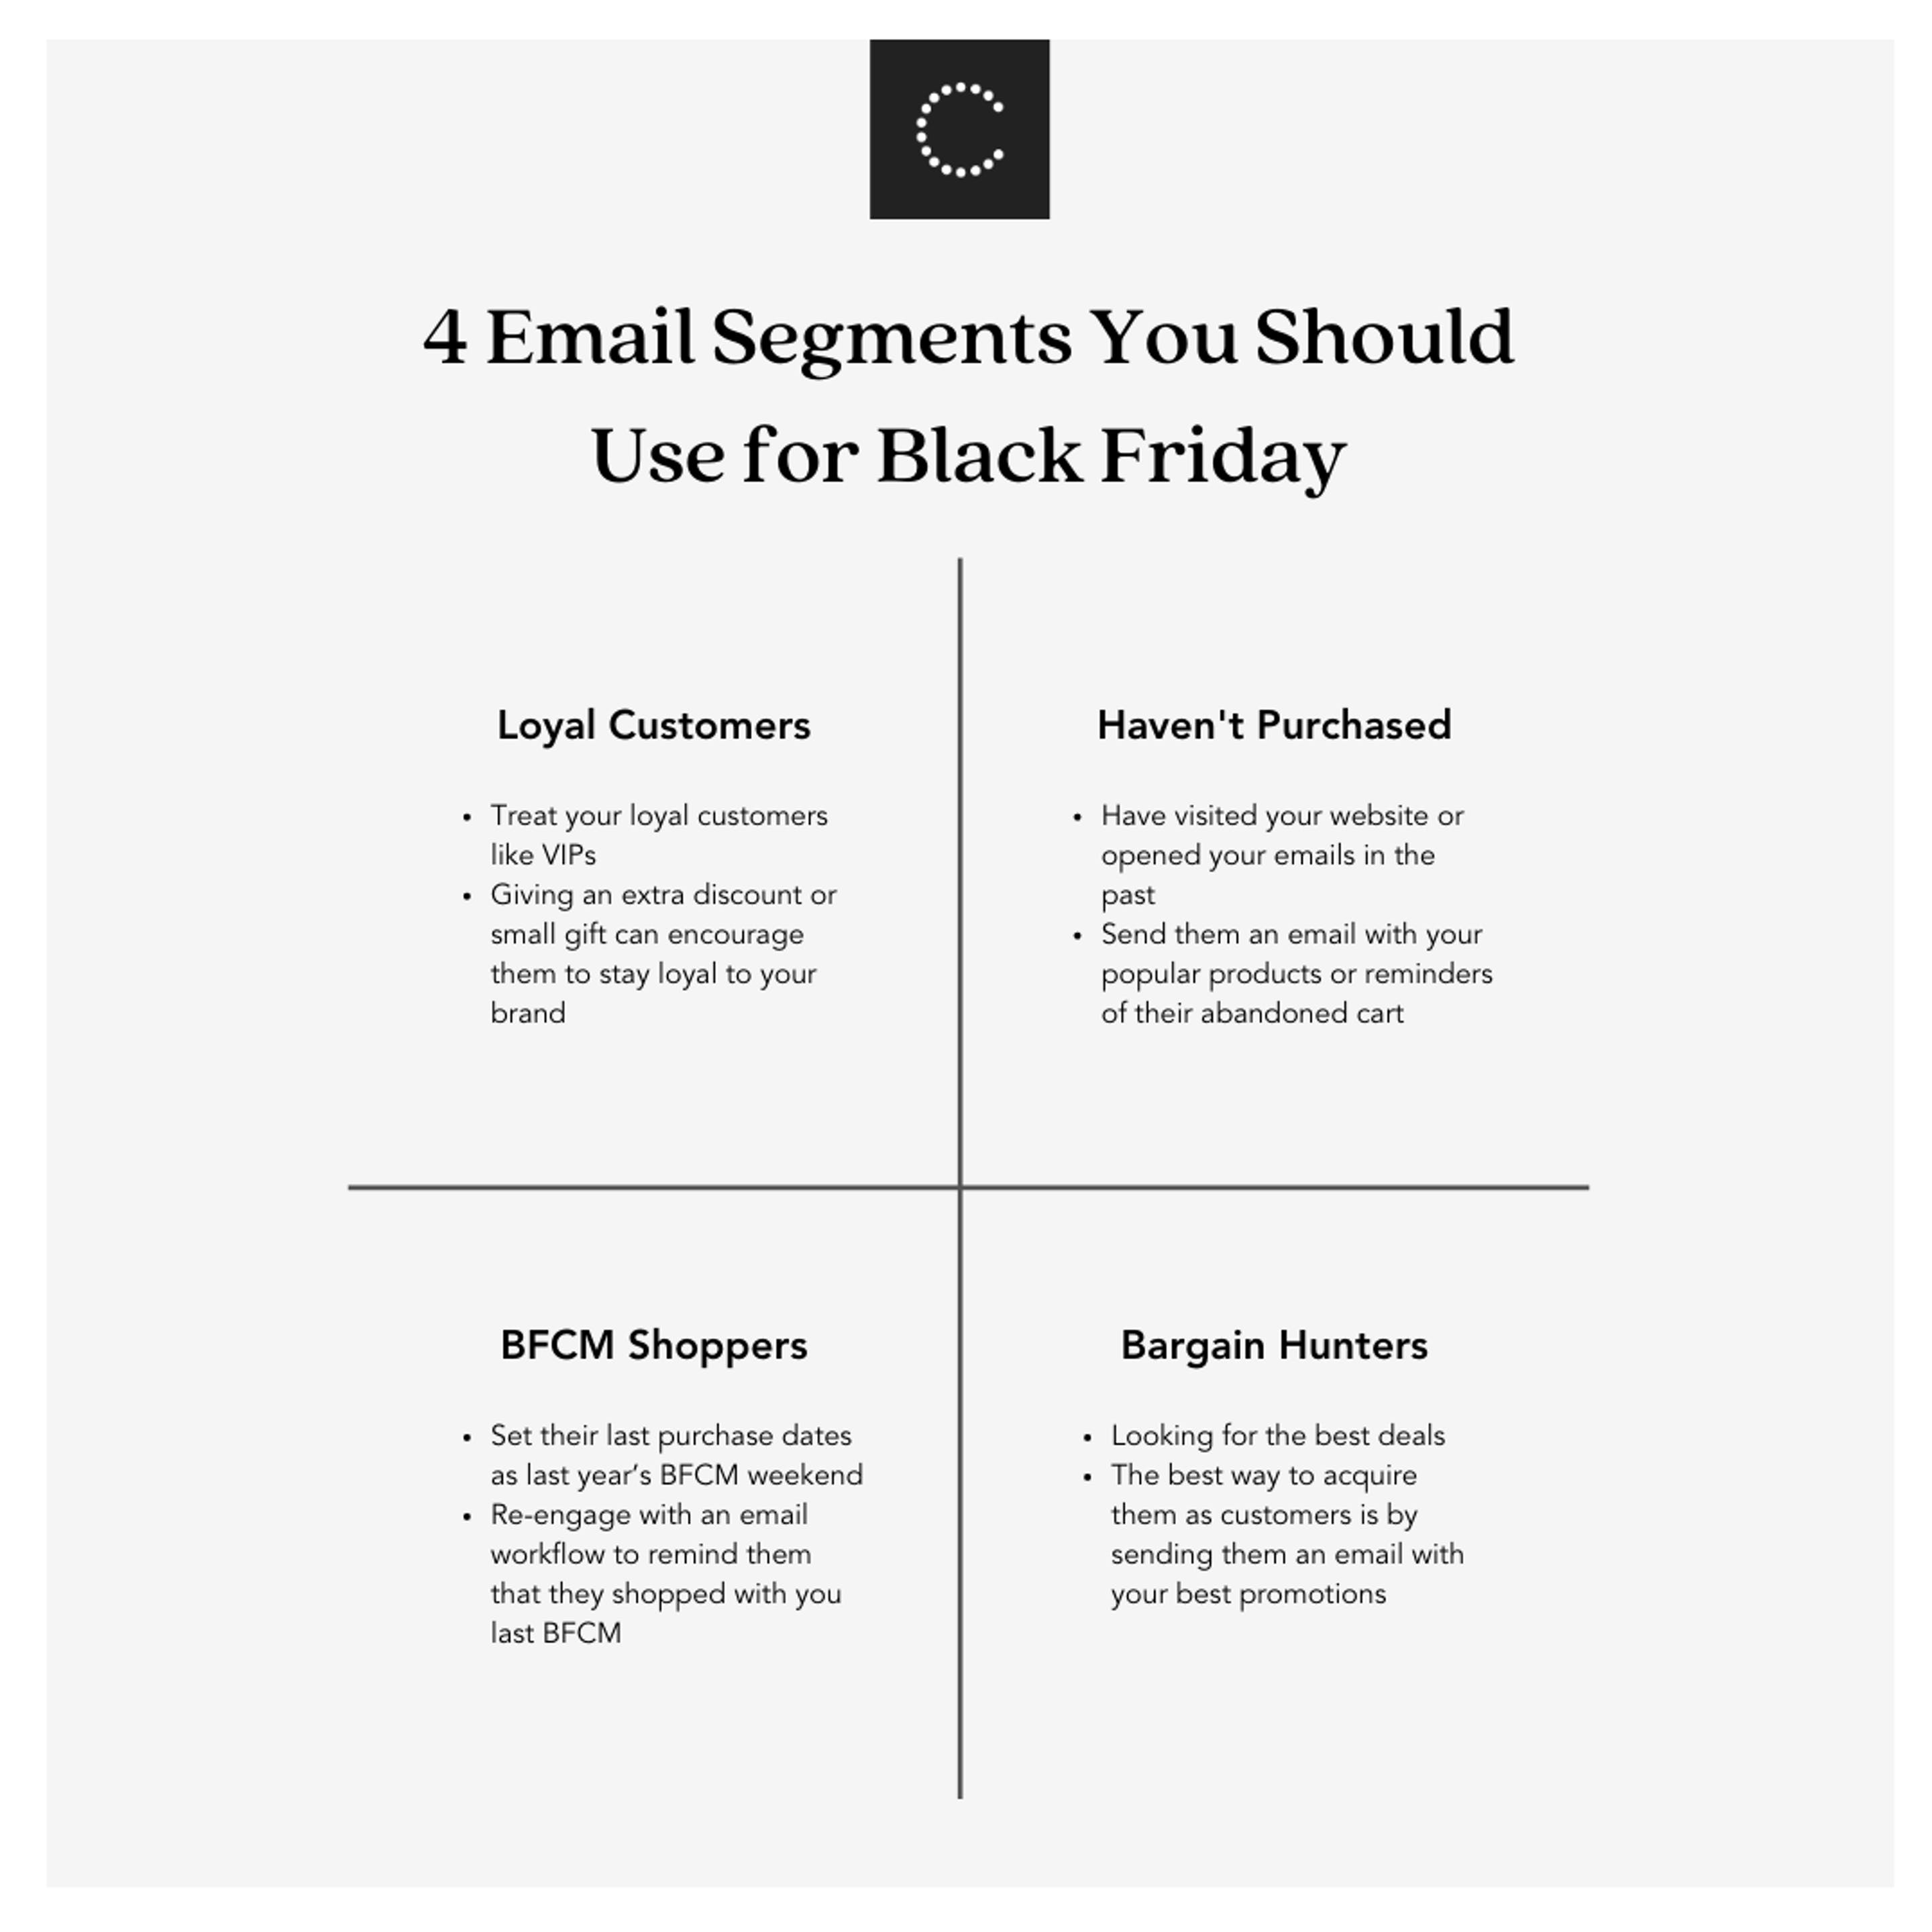 4 email segments you should use for black Friday